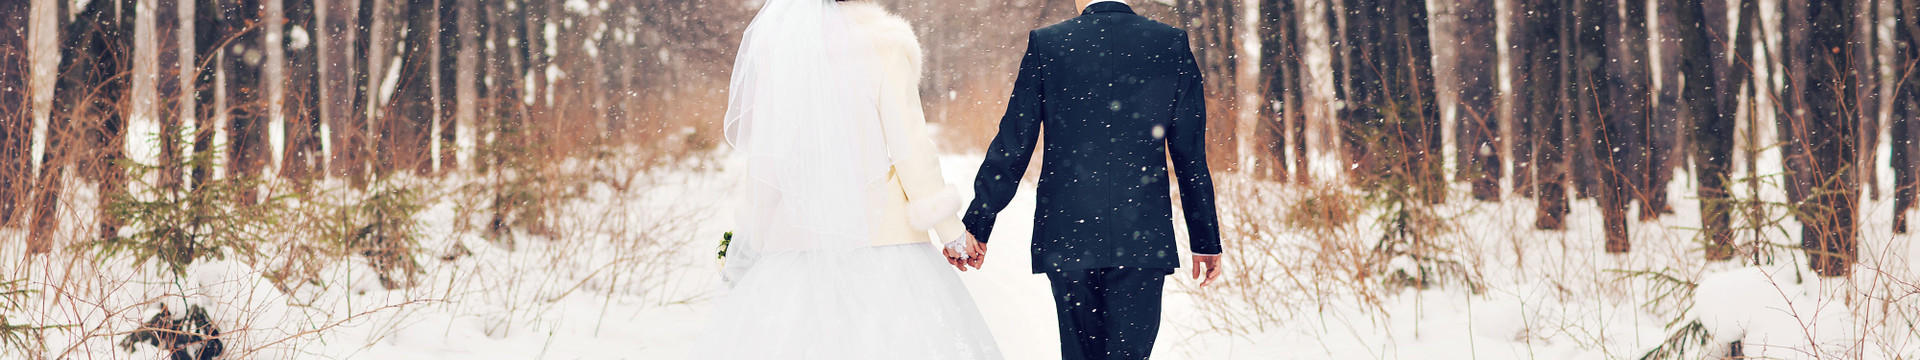 Newlyweds walking in the snow - Westgate Park City